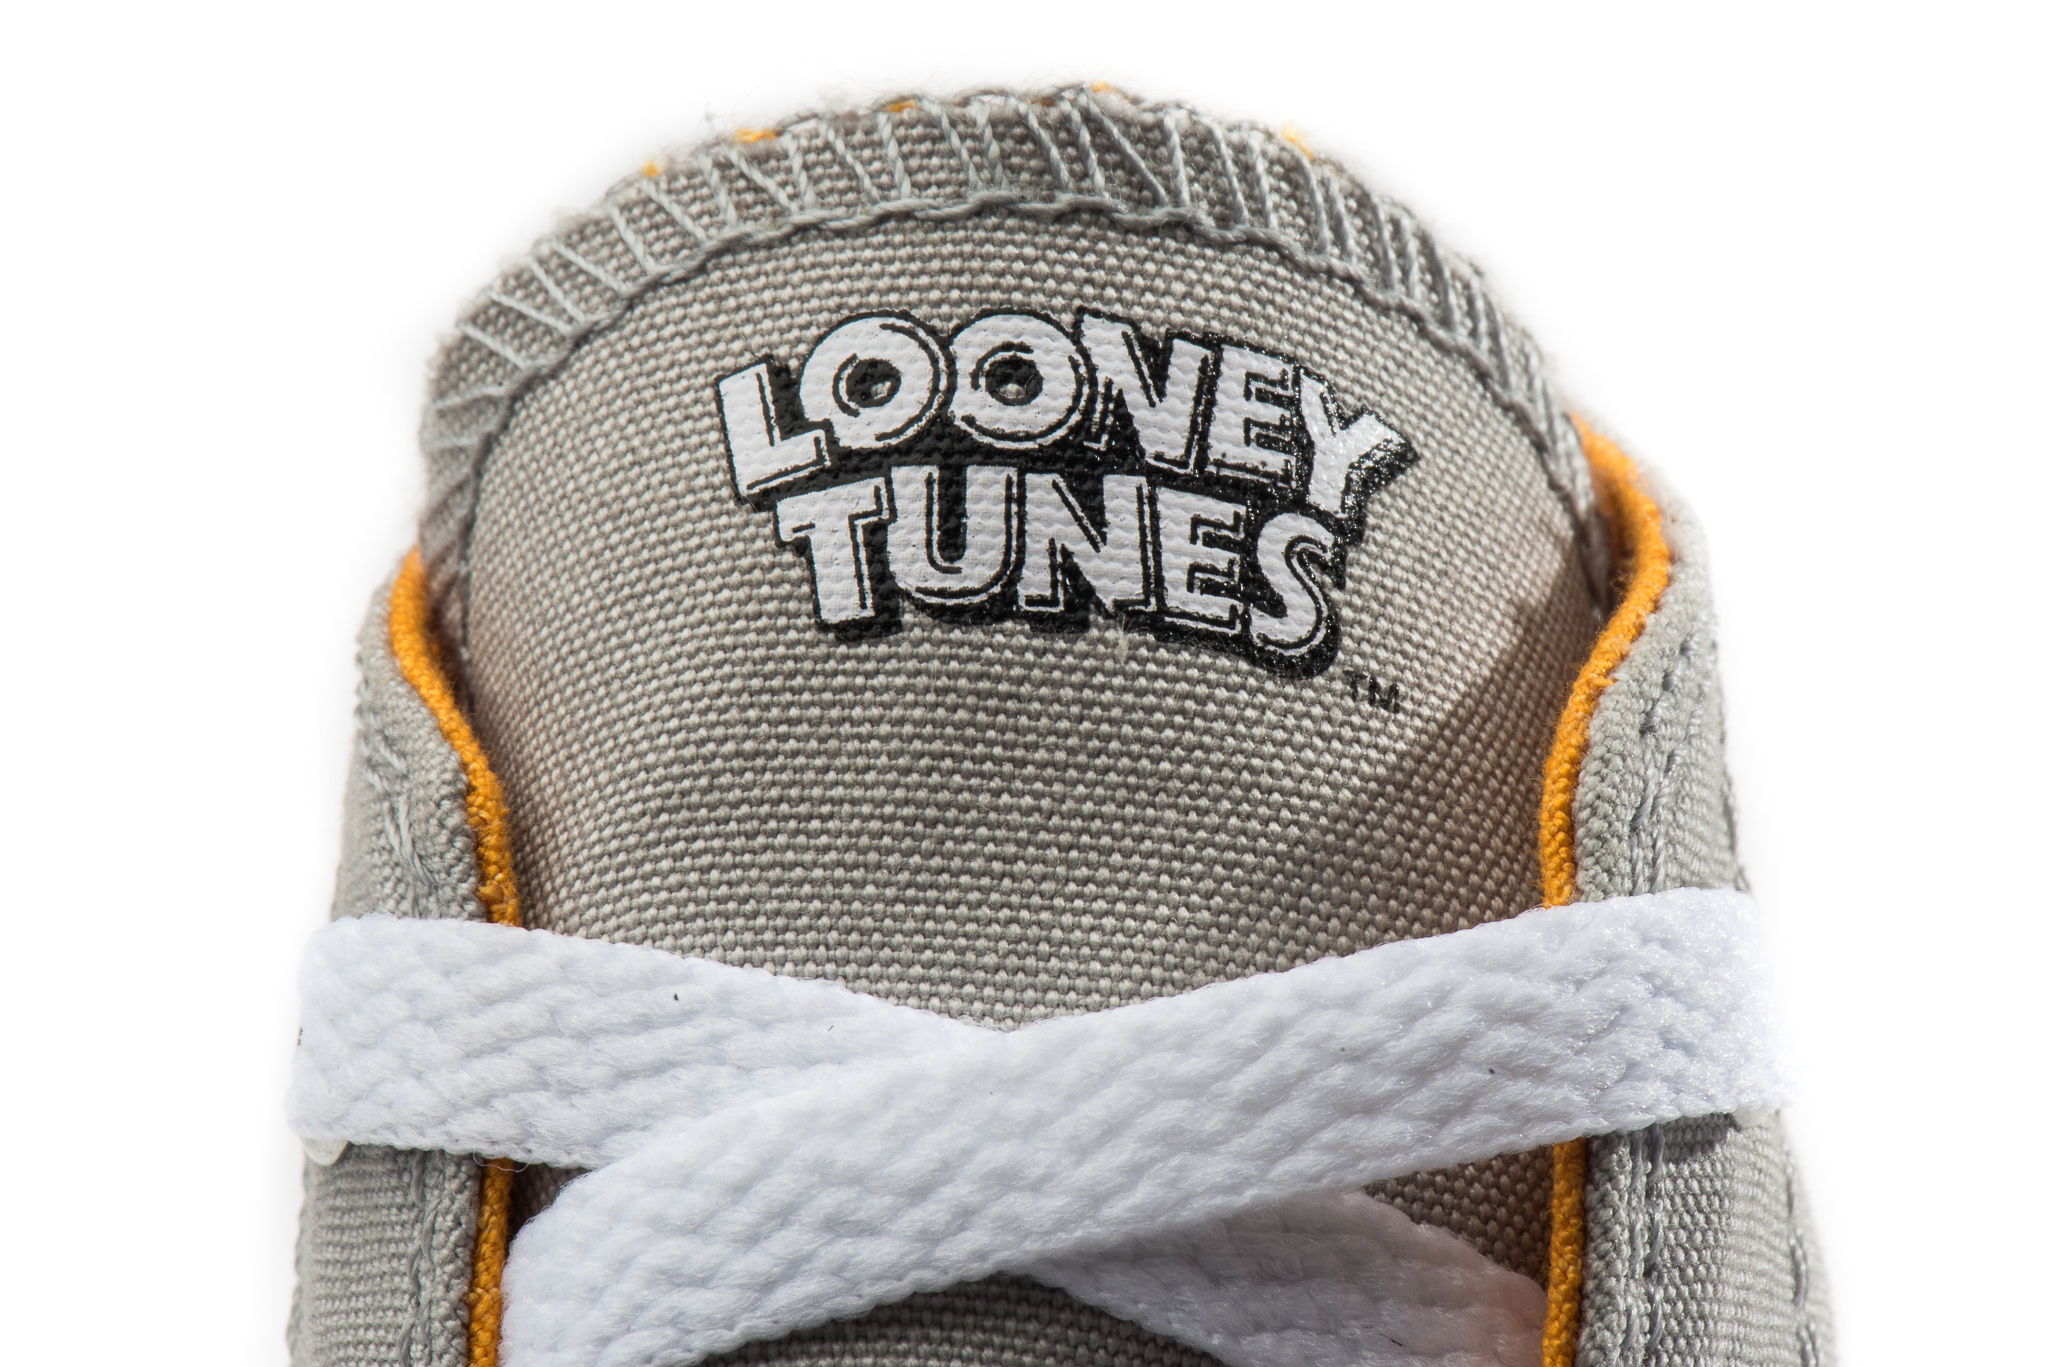 f894fe249b9 Looney Tunes Converse Shoes. Recently I made an assignment to photograph  some new products other than guitars so I decided to photograph some new  shoes my ...